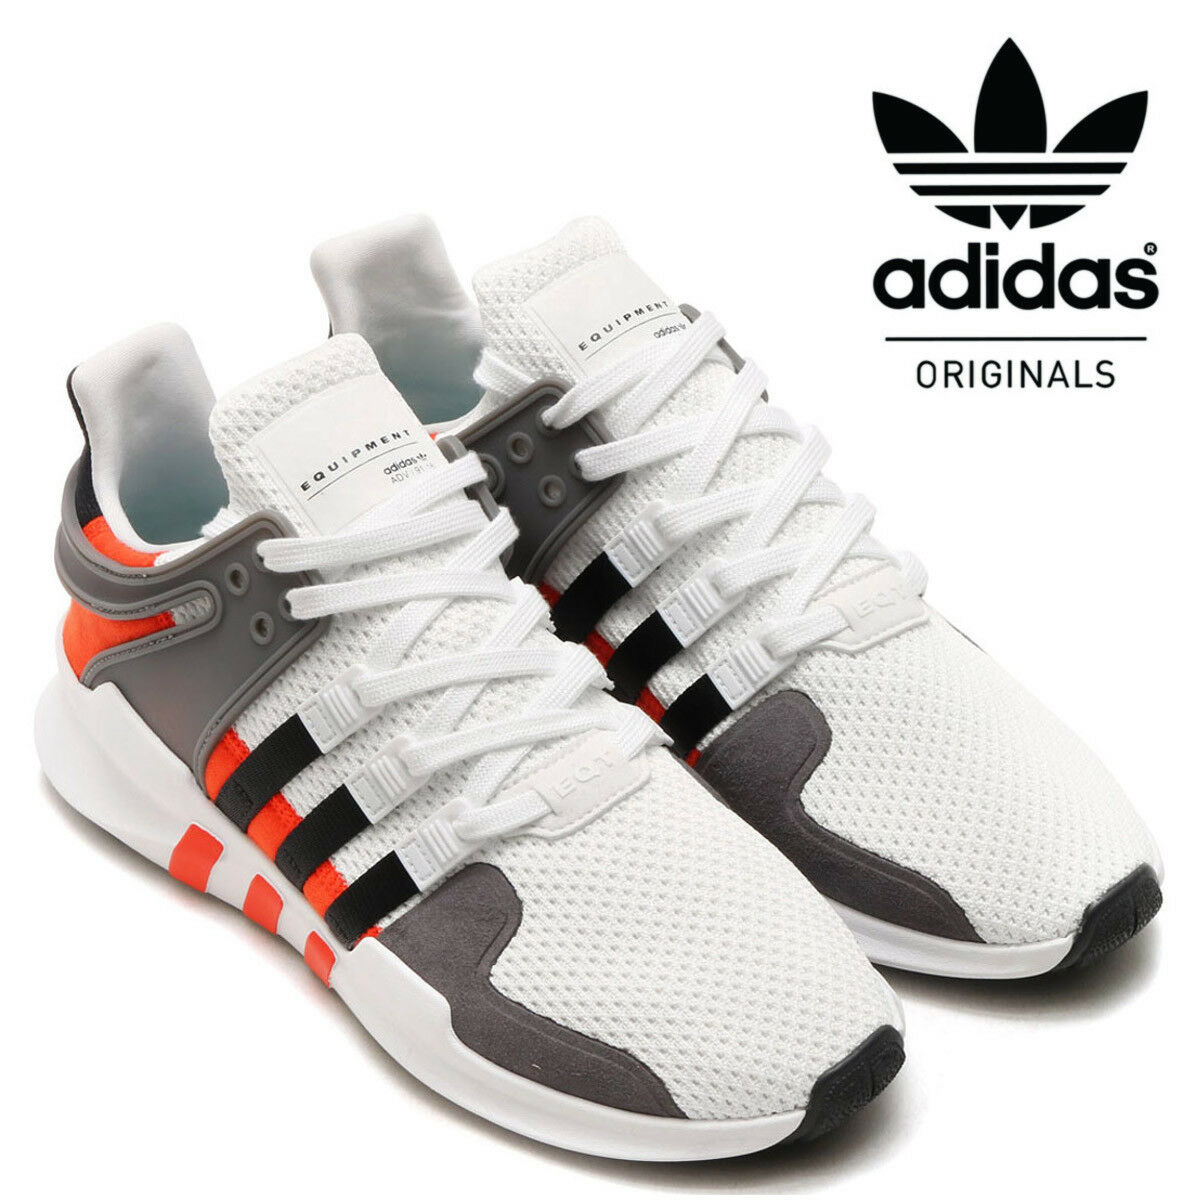 brand new 2dddb a0d5b Details about Adidas Originals Mens and Kids EQT Support ADV Trainers White  Casual Sneakers